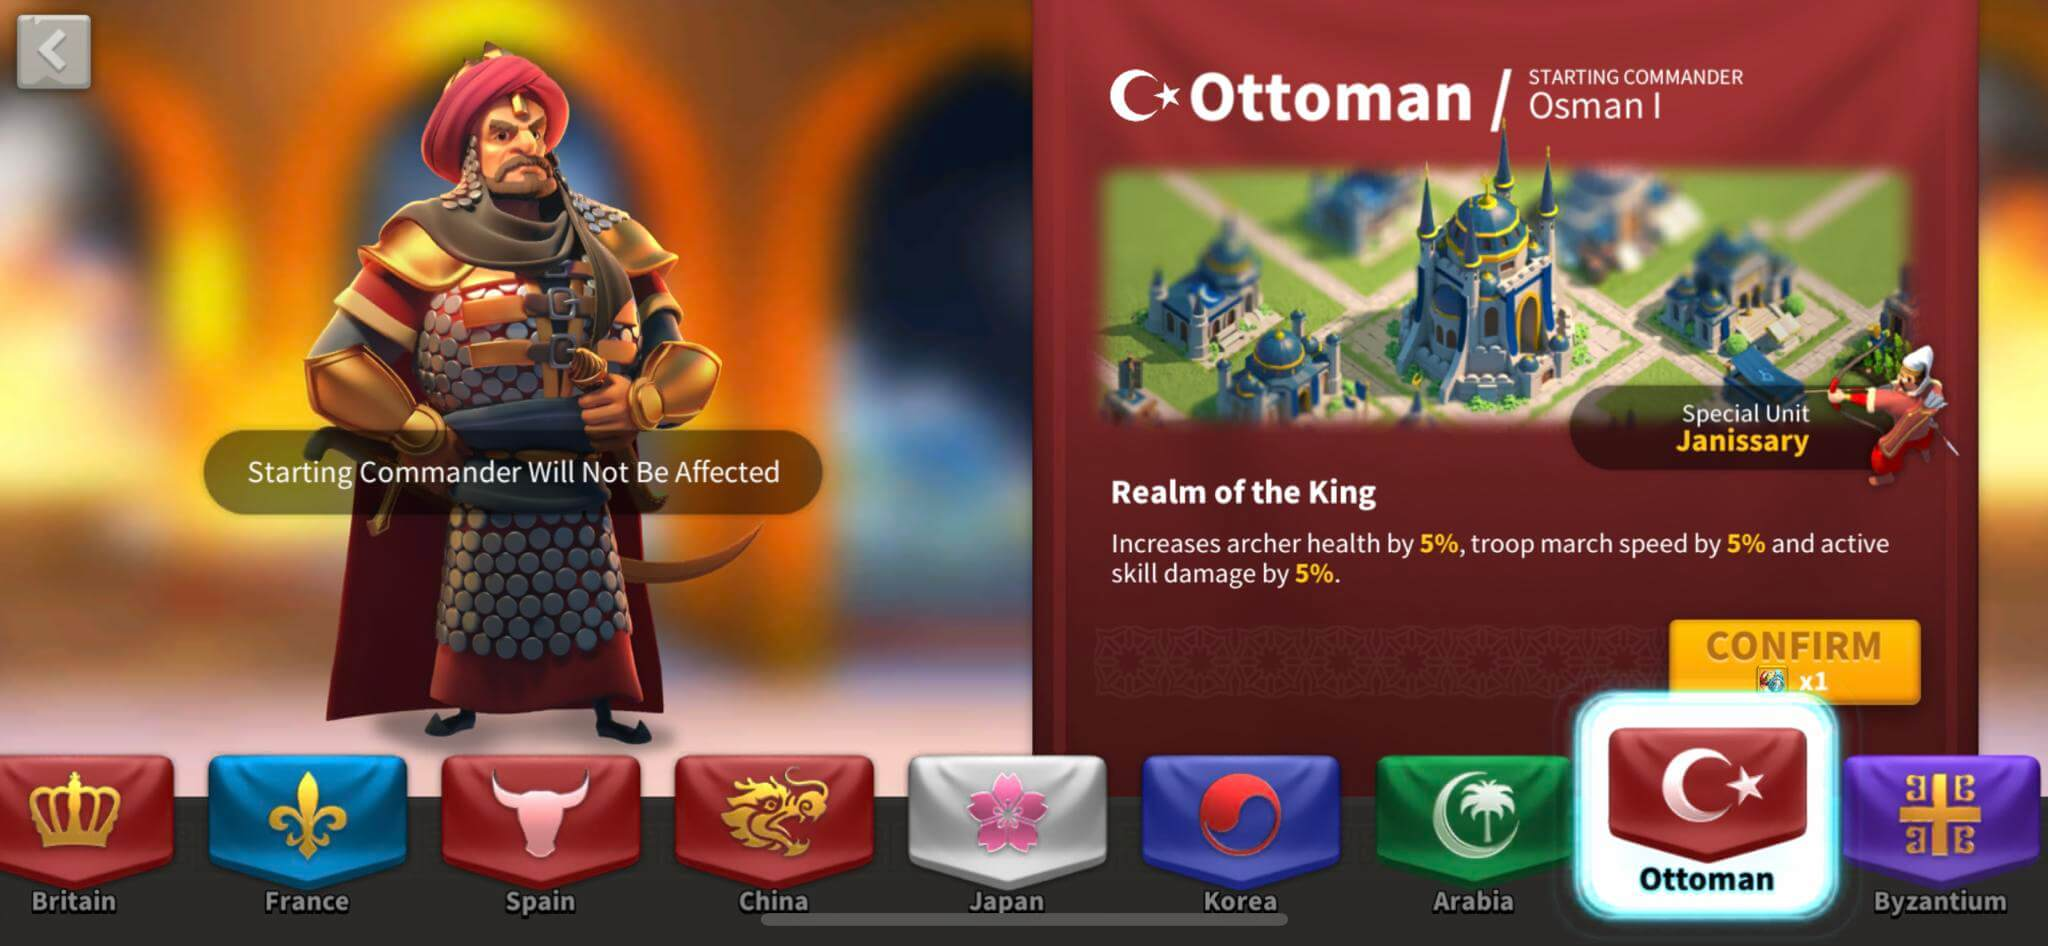 ottoman nation in rise of kingdoms